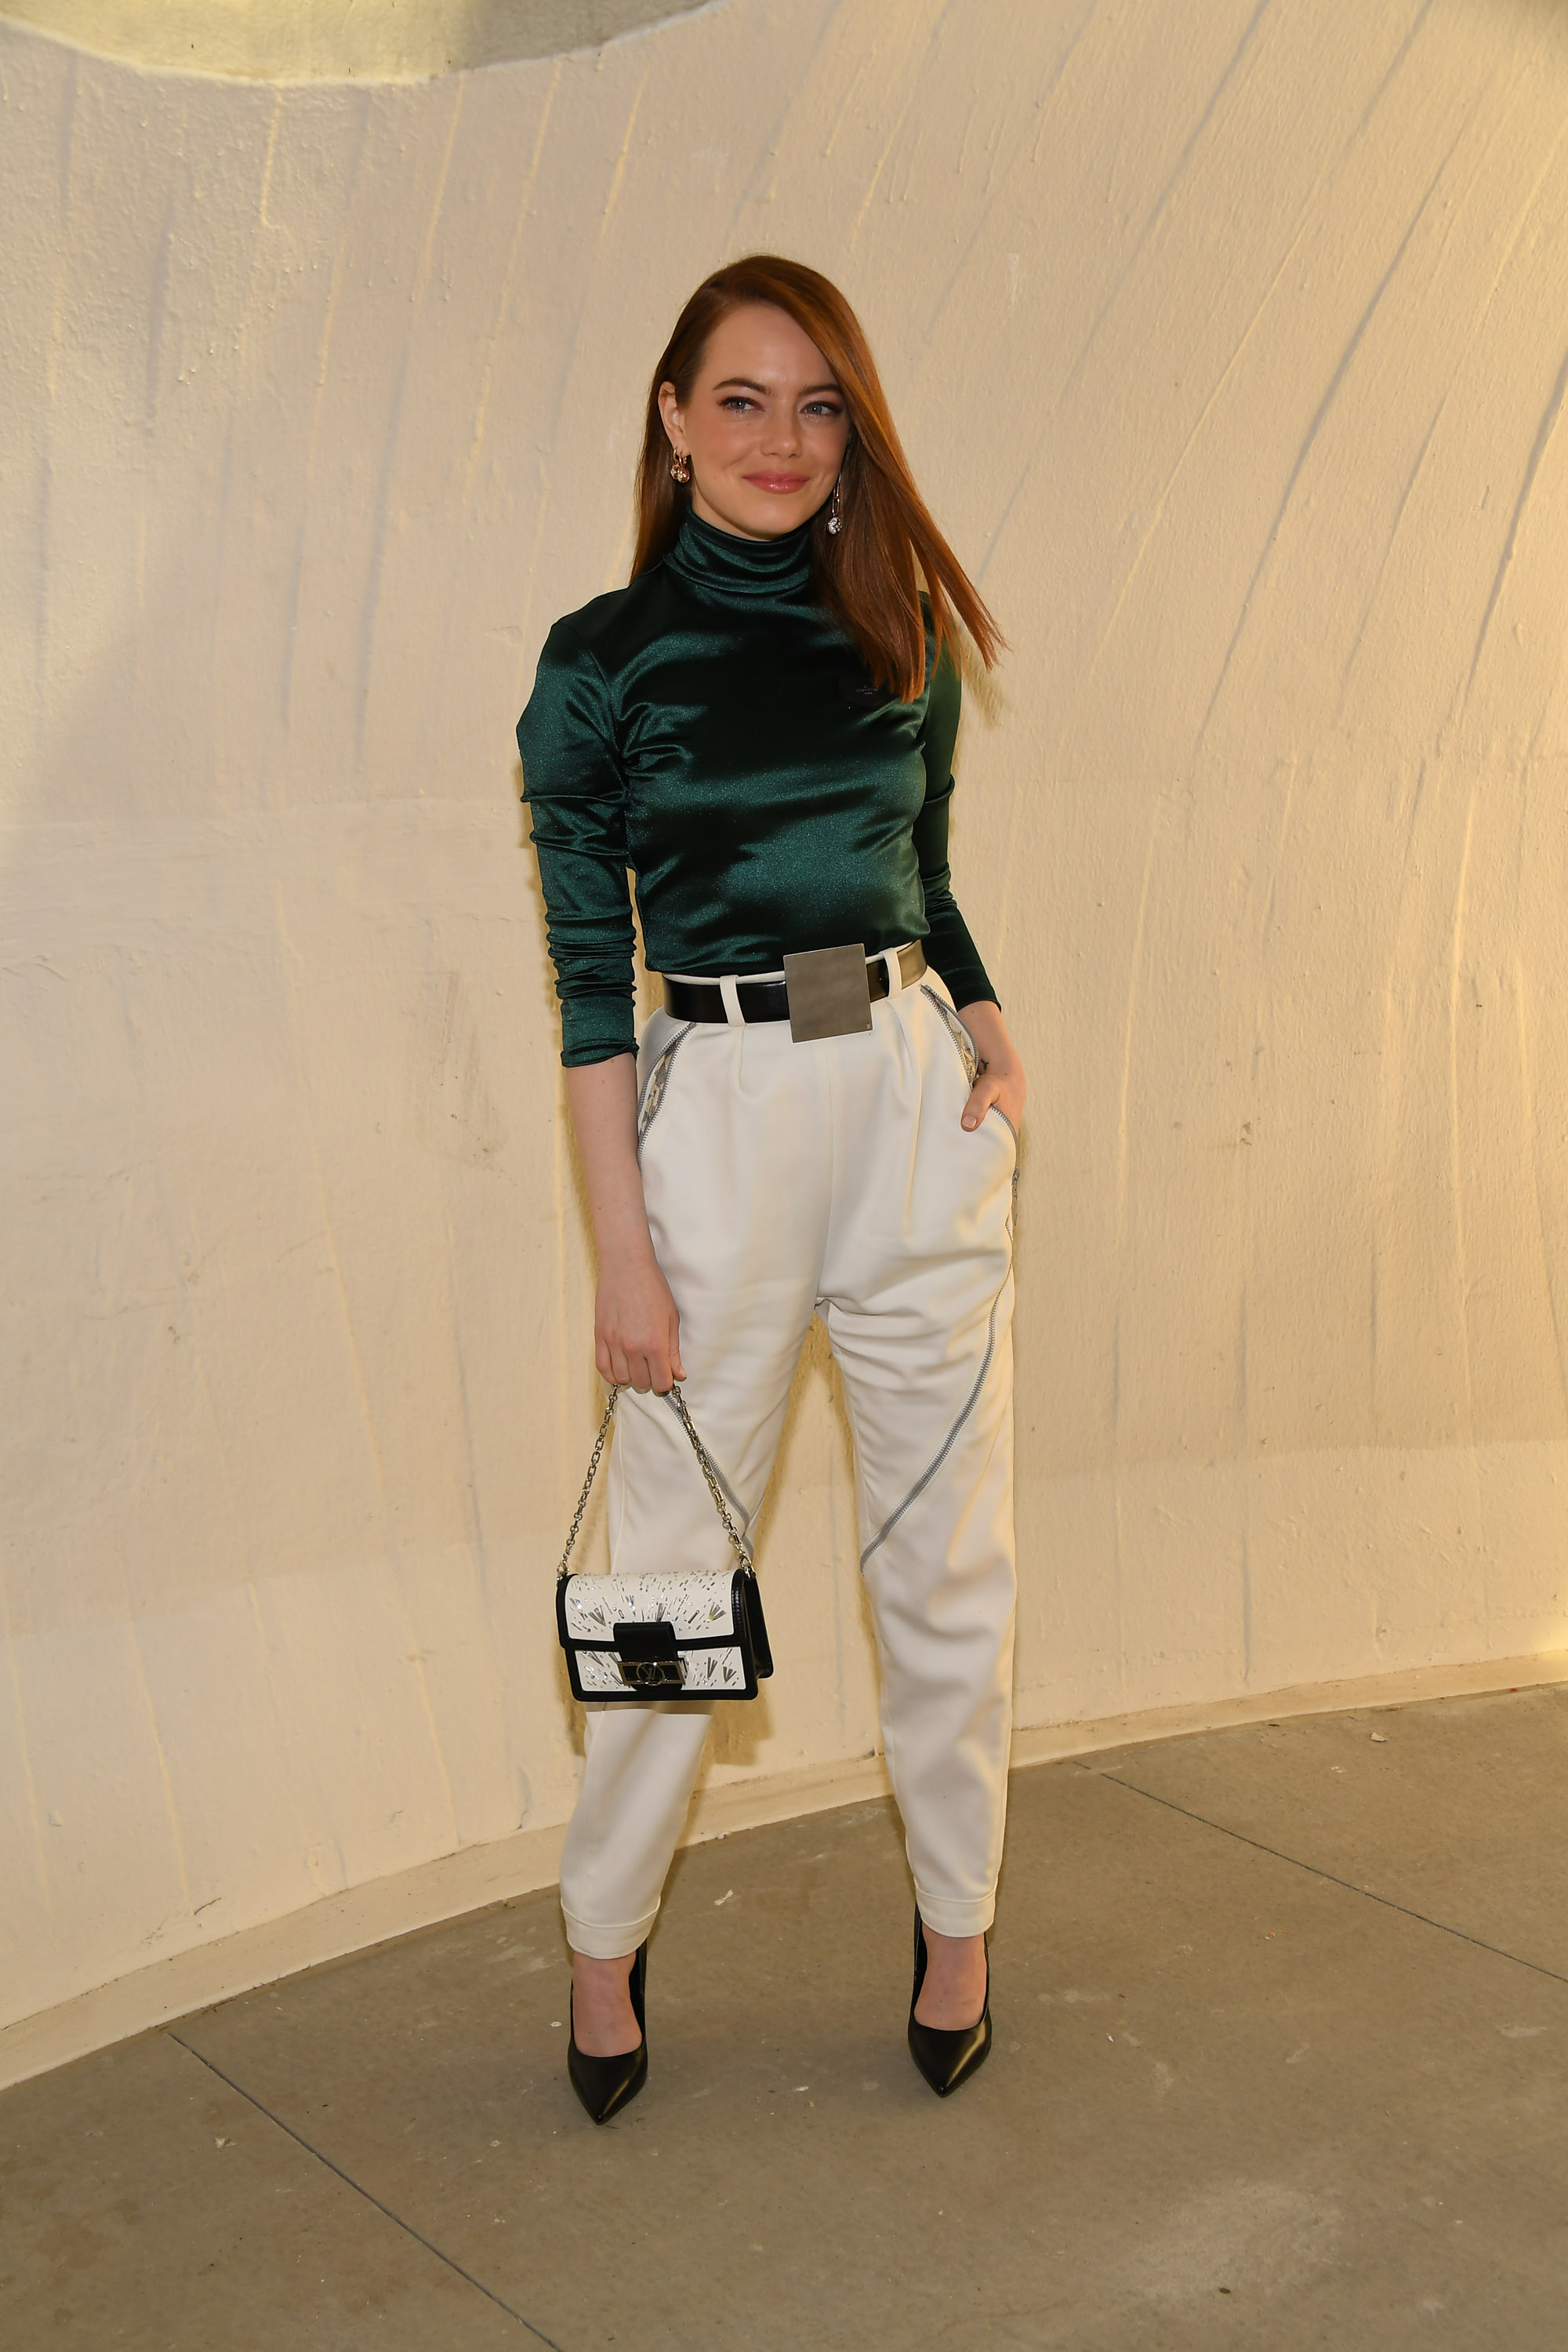 NEW YORK, NEW YORK - MAY 08: Emma Stone attends the Louis Vuitton Cruise 2020 Fashion Show at JFK Airport on May 08, 2019 in New York City. (Photo by Nicholas Hunt/Getty Images for Louis Vuitton)